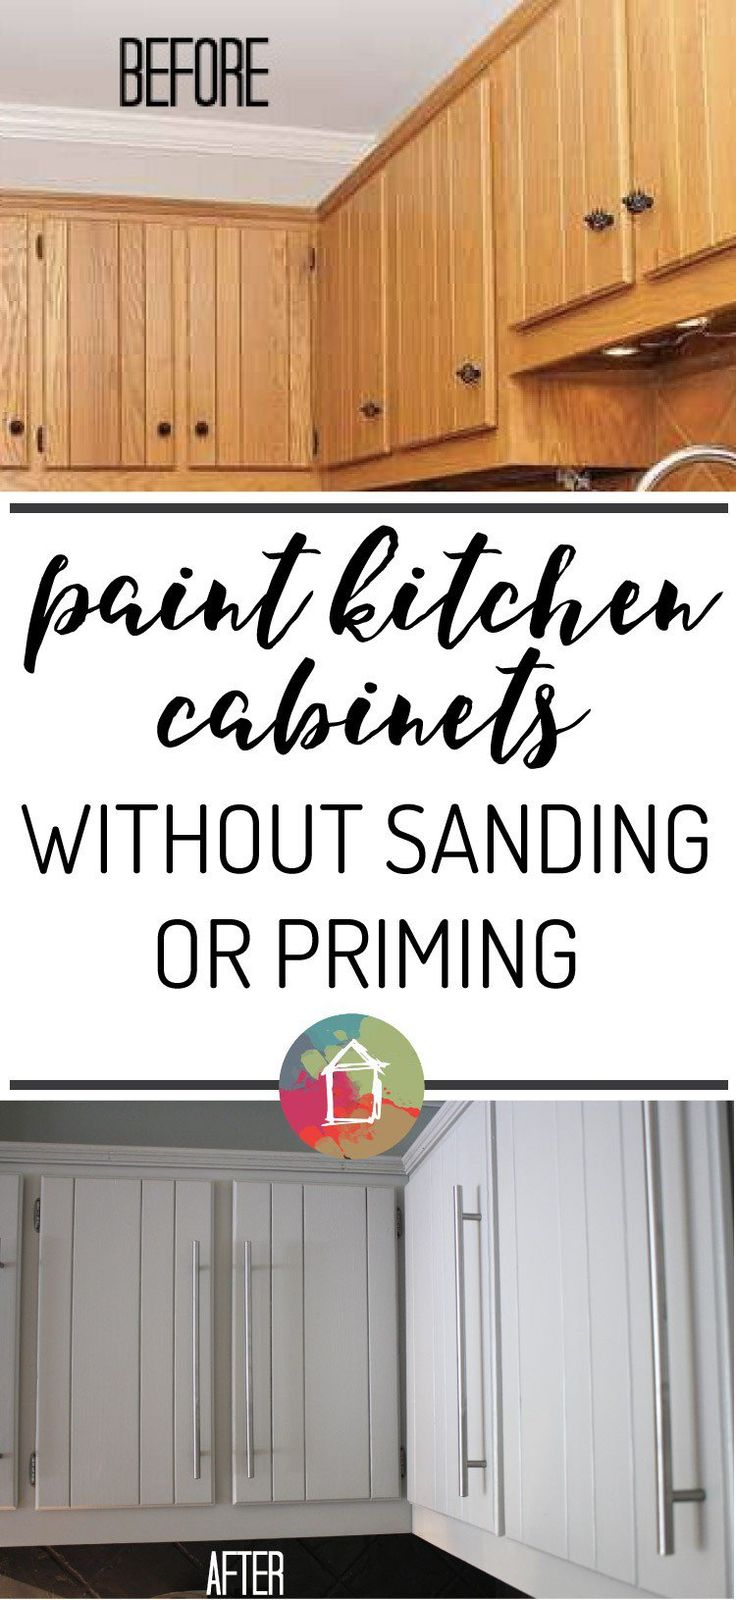 How To Paint Kitchen Cabinets  No Painting Sanding. Best 25  No sanding ideas on Pinterest   DIY furniture distressing